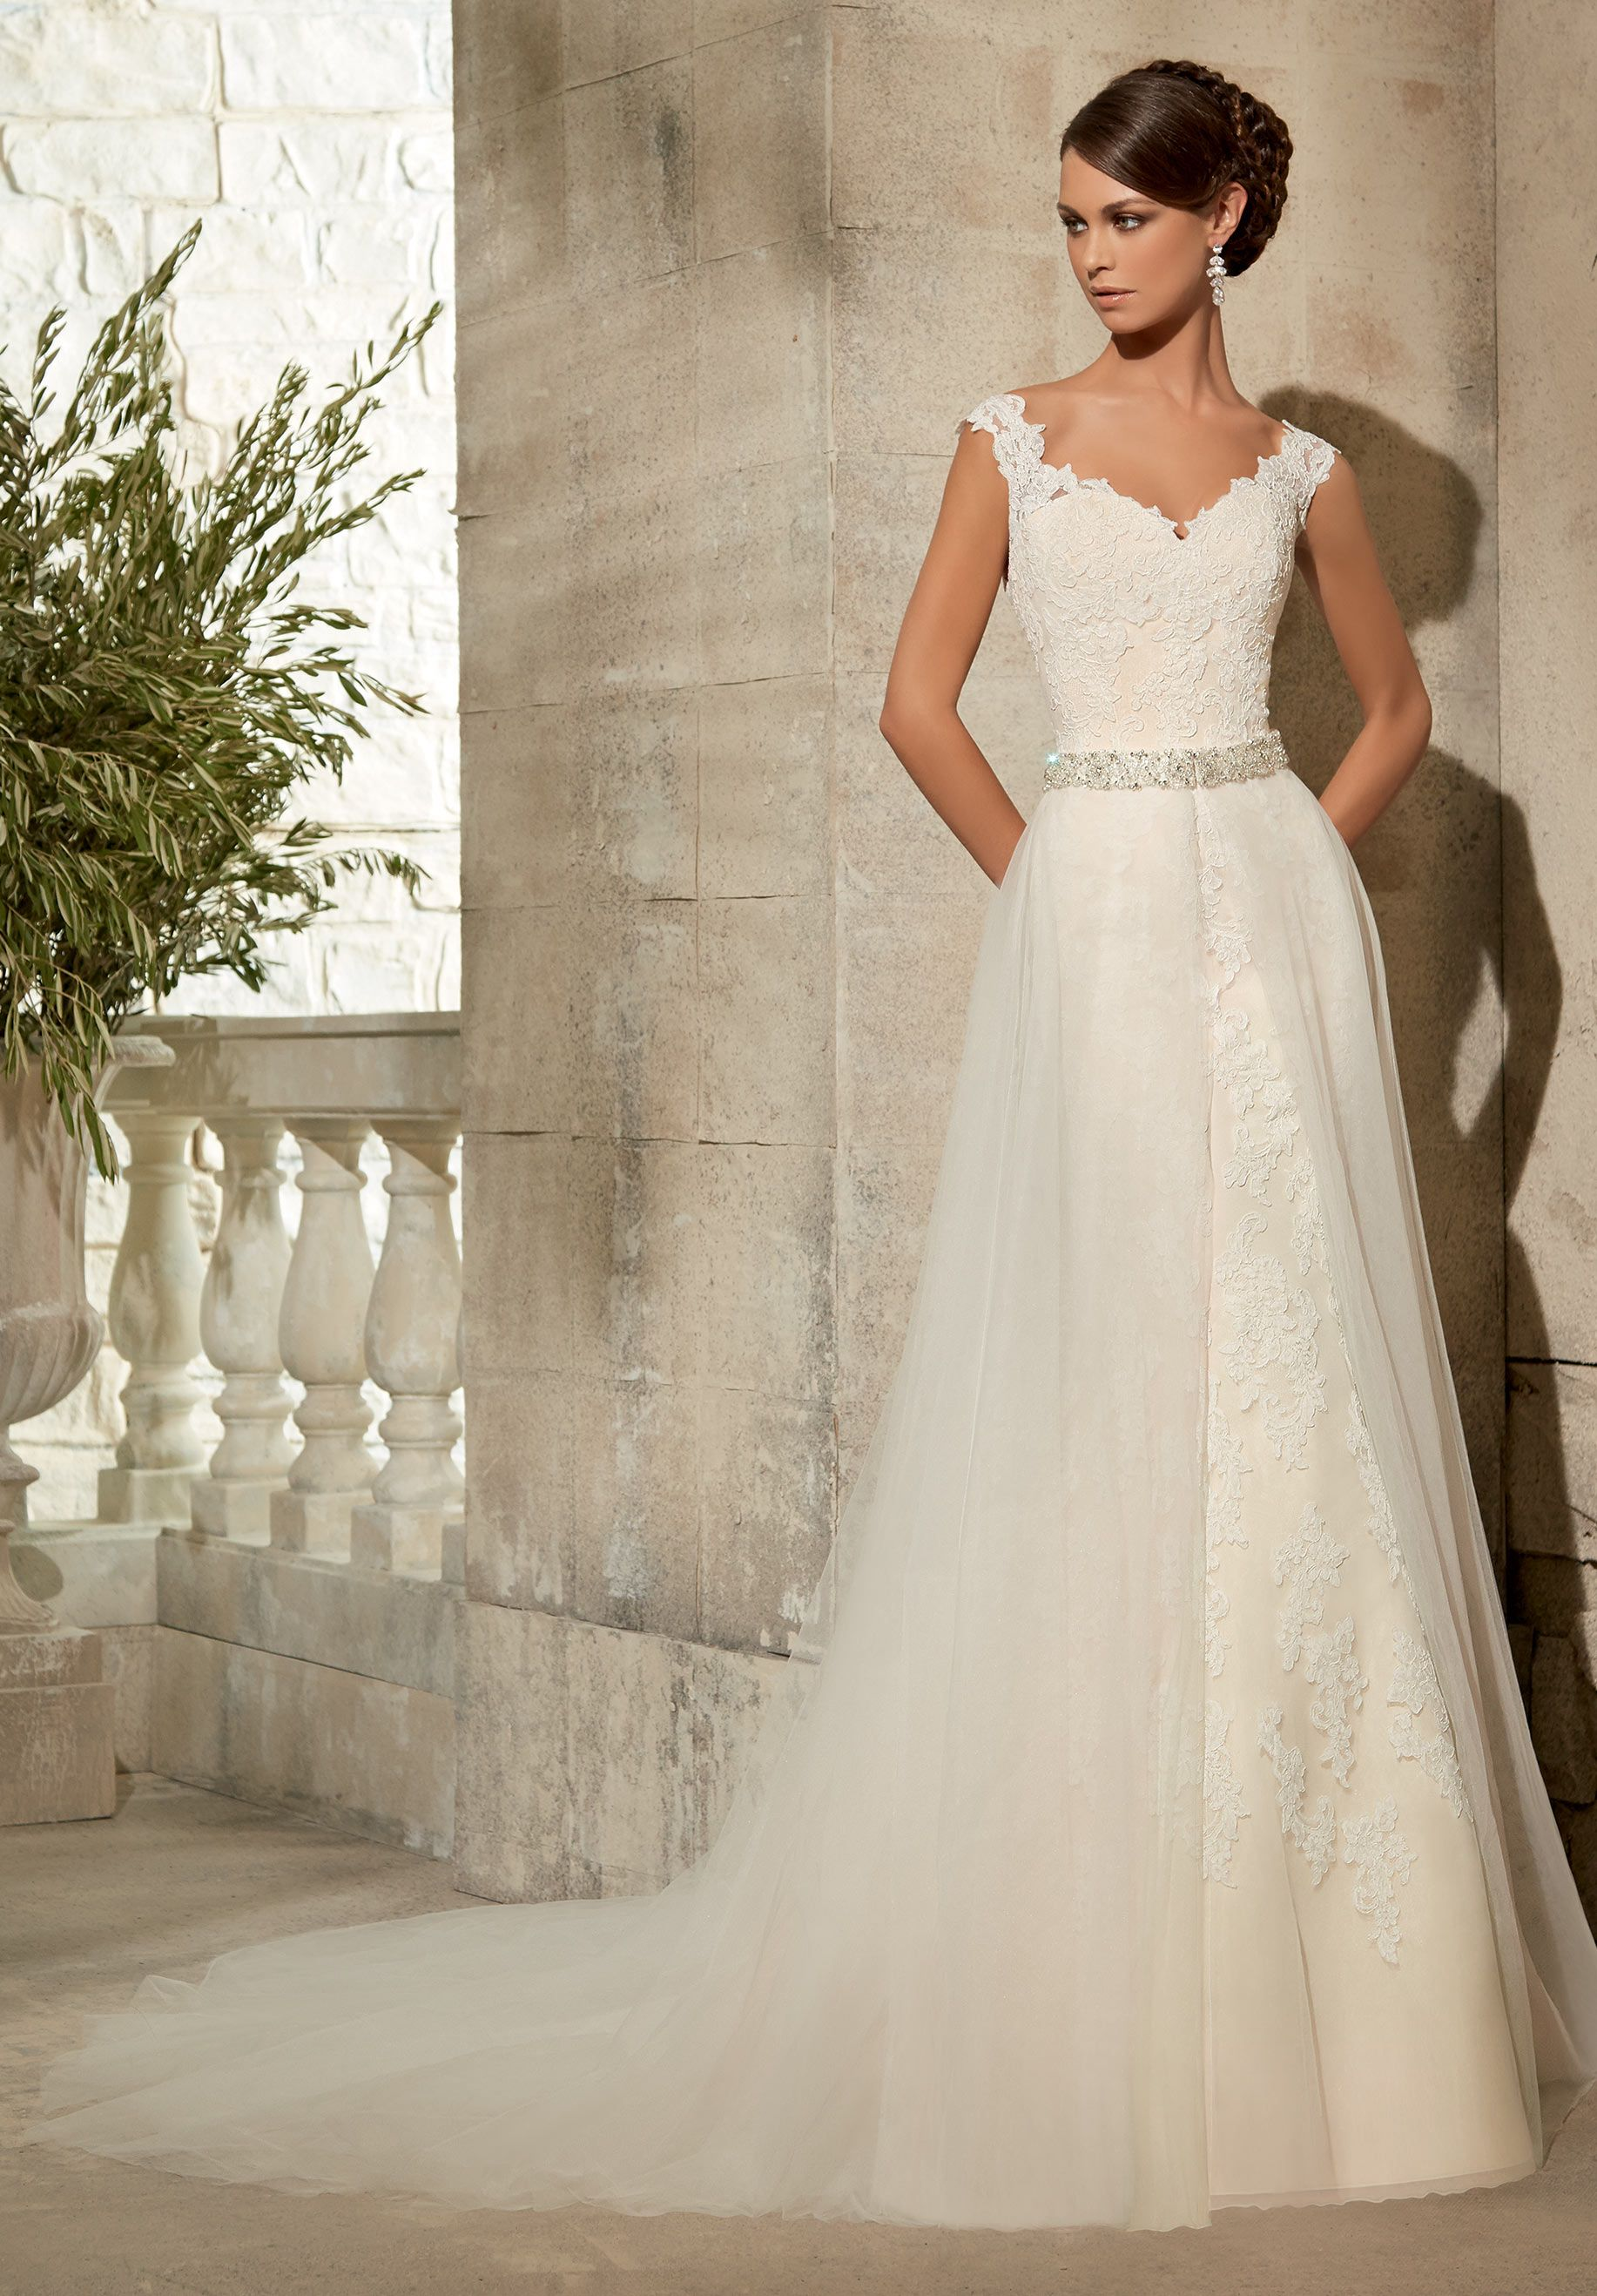 Wedding Gown Accessories TULLE OVERSKIRT WITH BEADED WAISTBAND Available in  White b7c74fdae77c